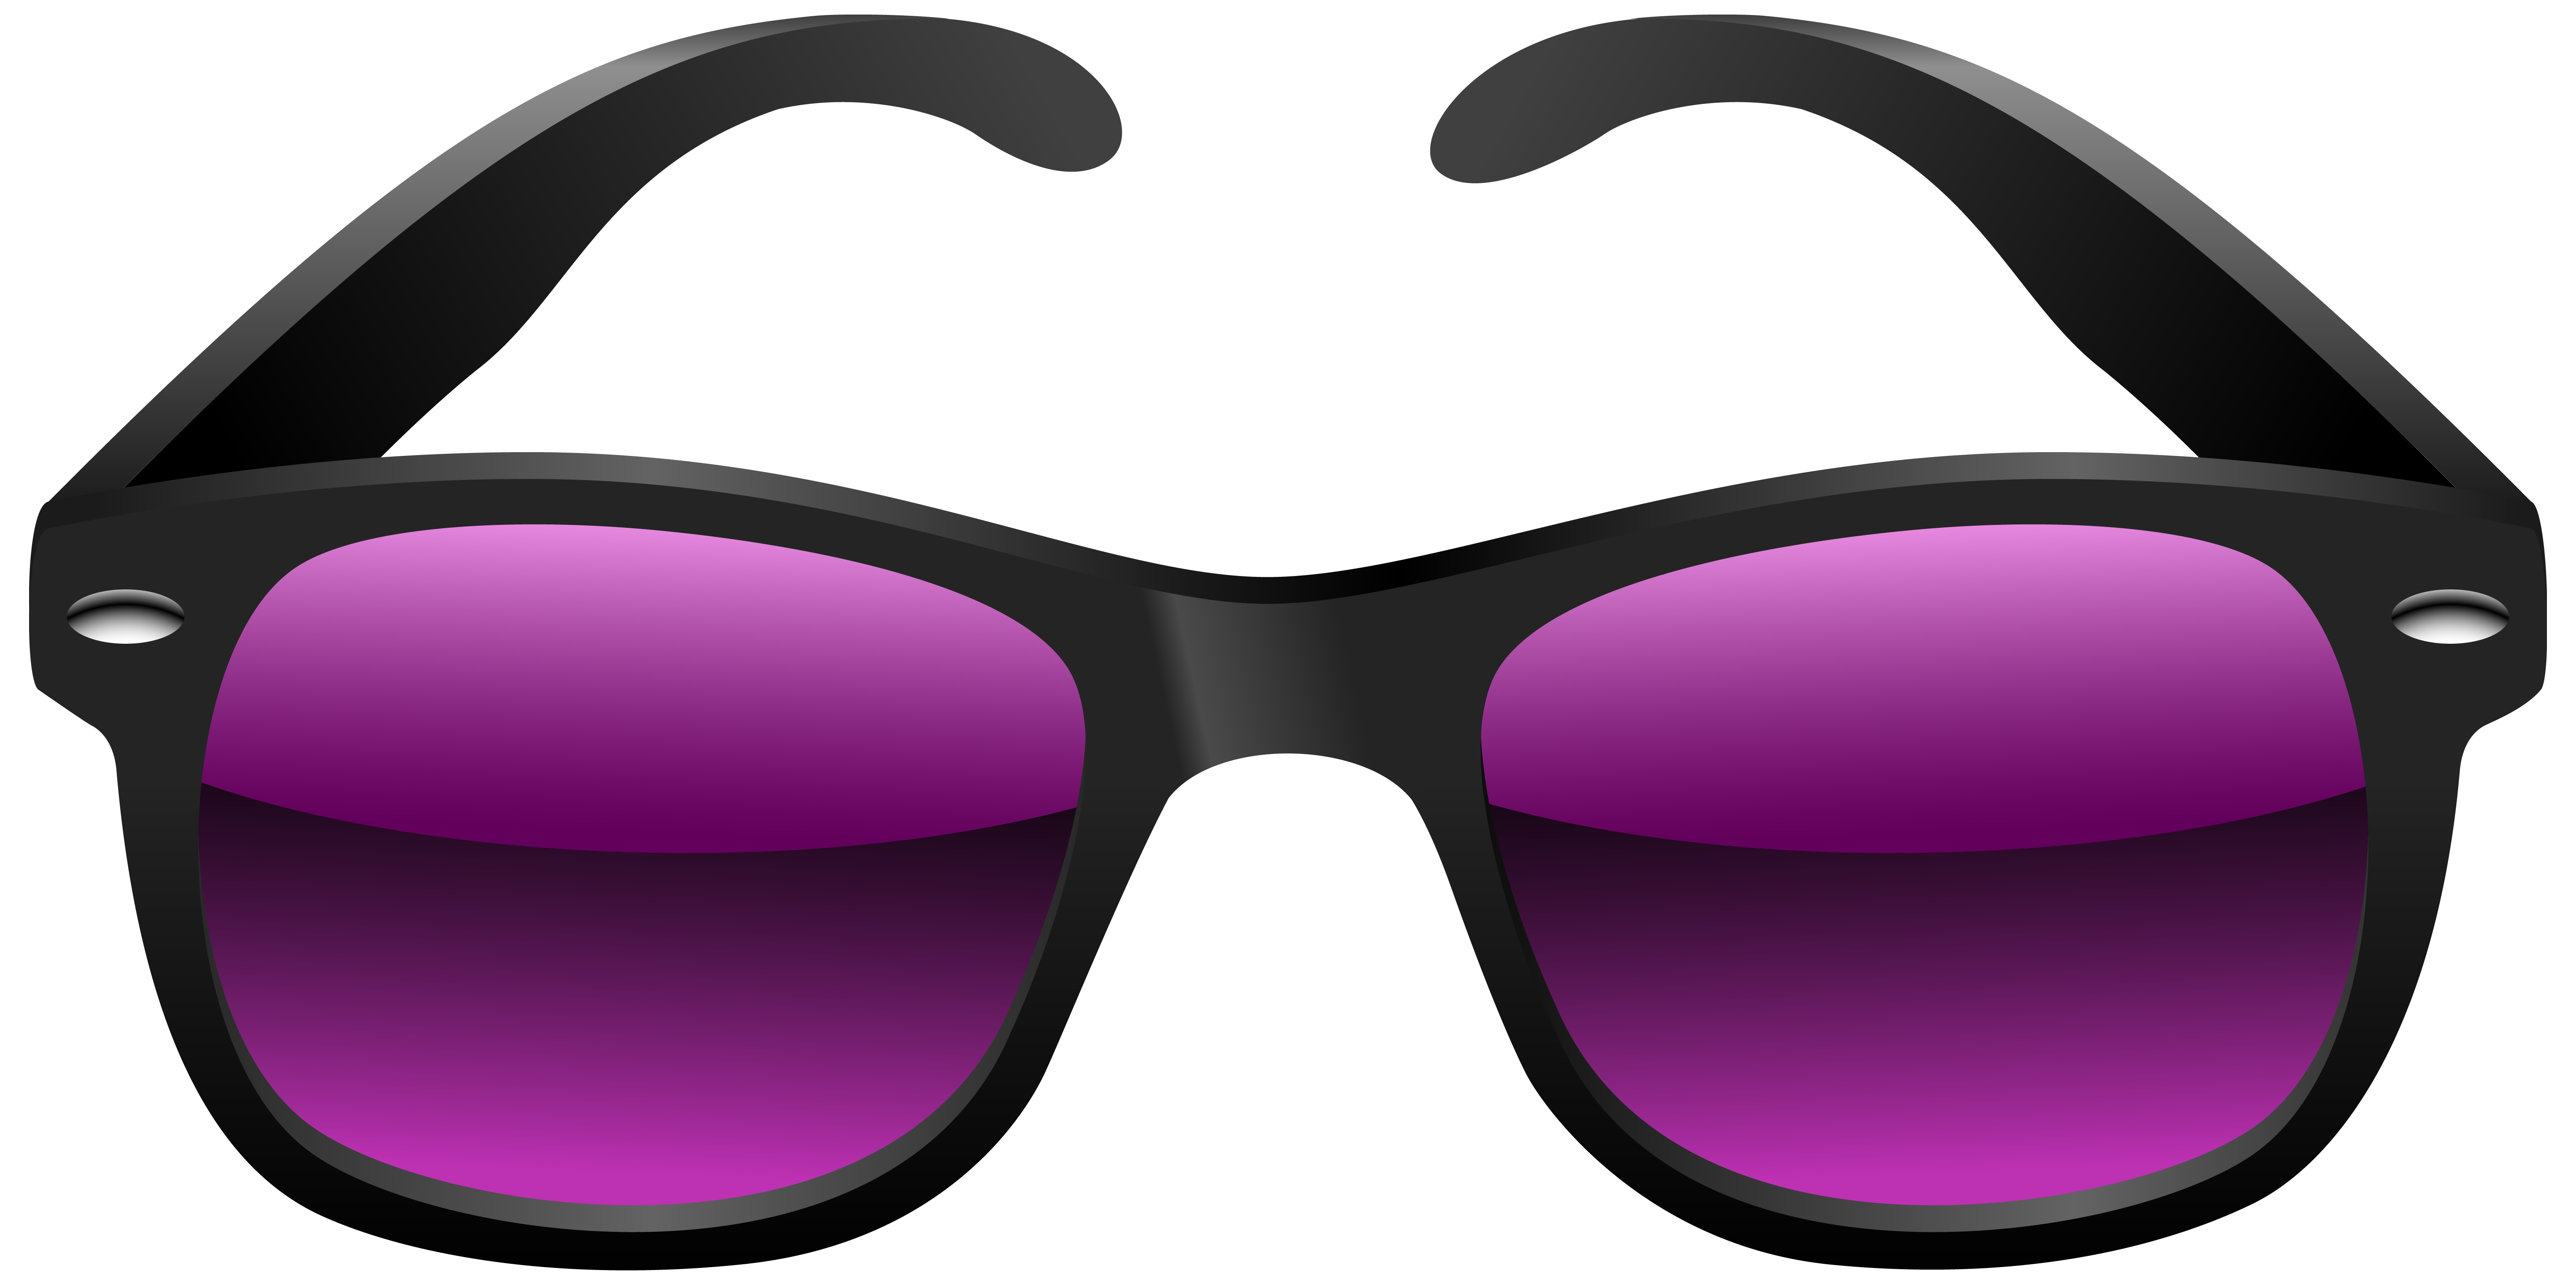 Hd sunglasses clipart jpg royalty free download Black and purple sunglasses clipart image | FONTS-WATER-BEACH-SUN ... jpg royalty free download